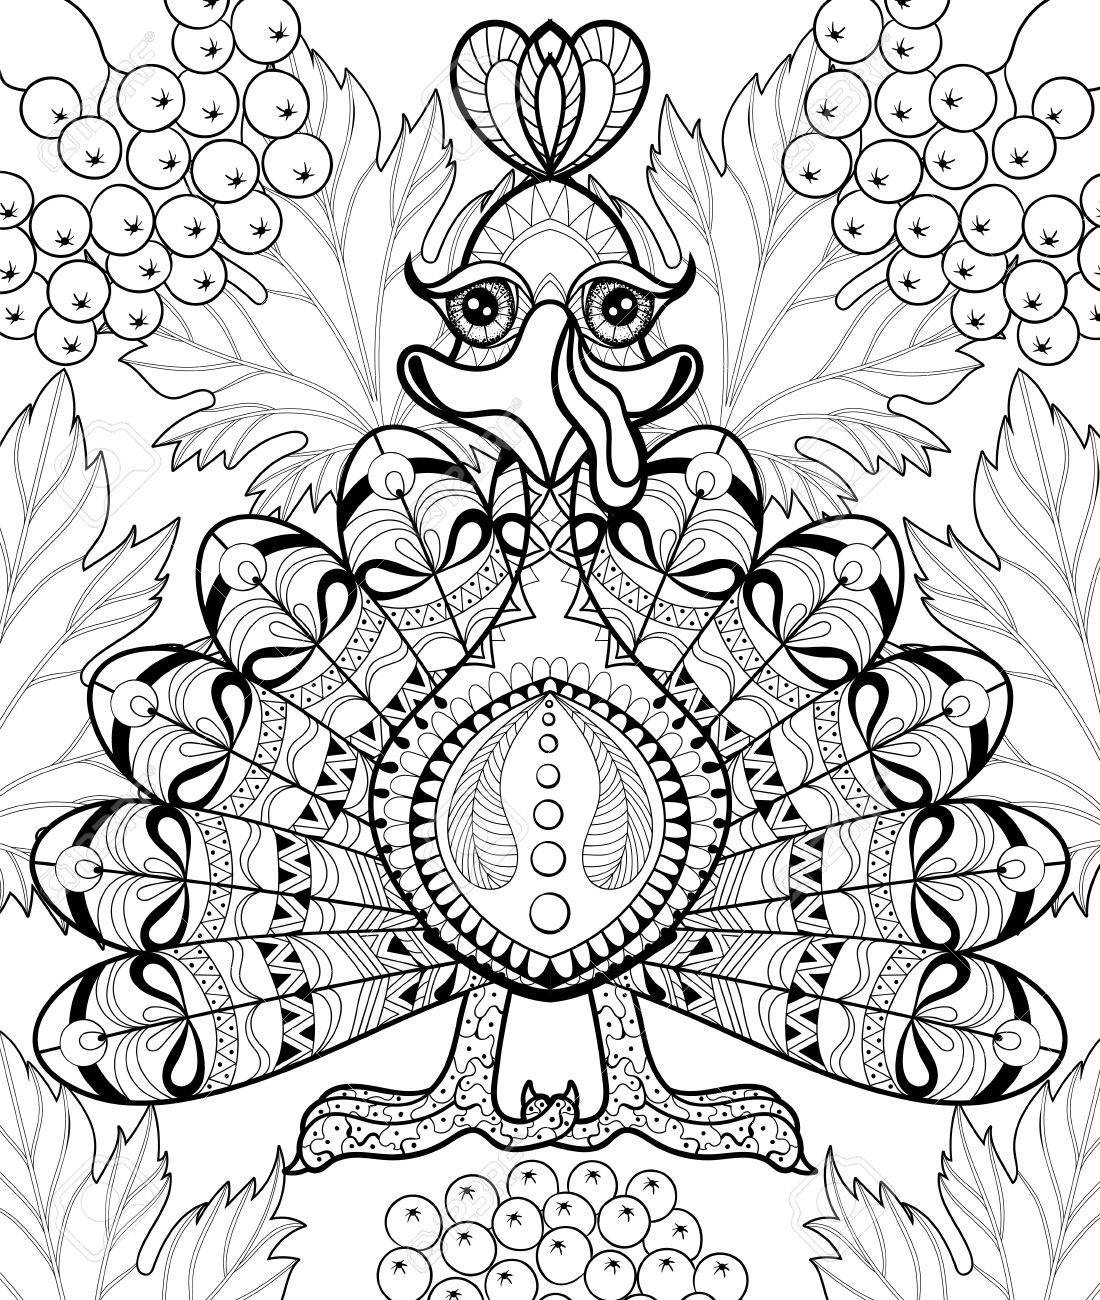 Stylized Turkey With Autumn Leaves For Thanksgiving Day Freehand Sketch Adult Anti Stress Coloring